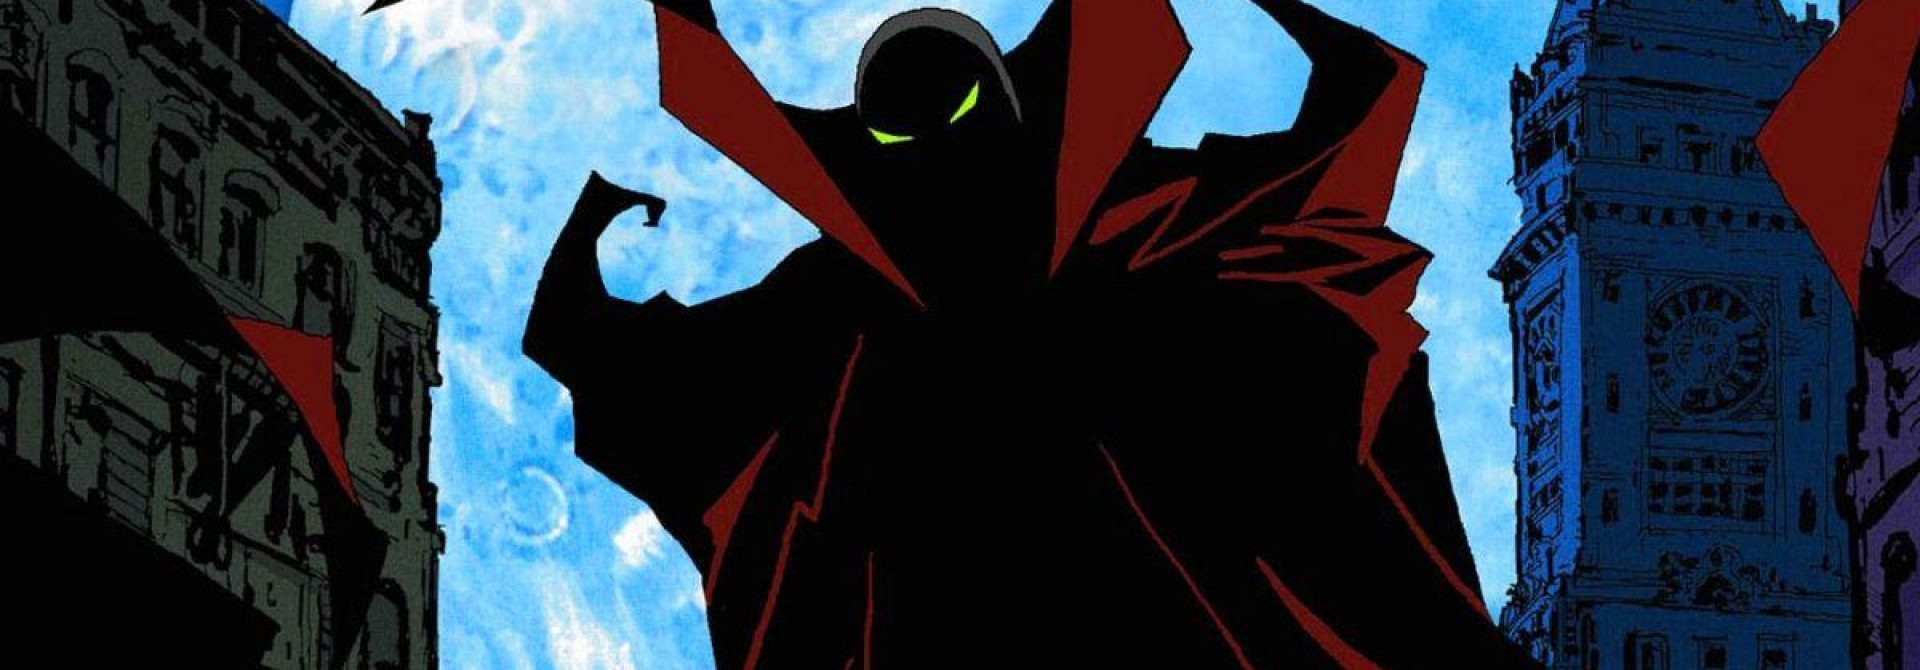 NYCC 2017: Could Spawn Movie Lead To New Animated Series?